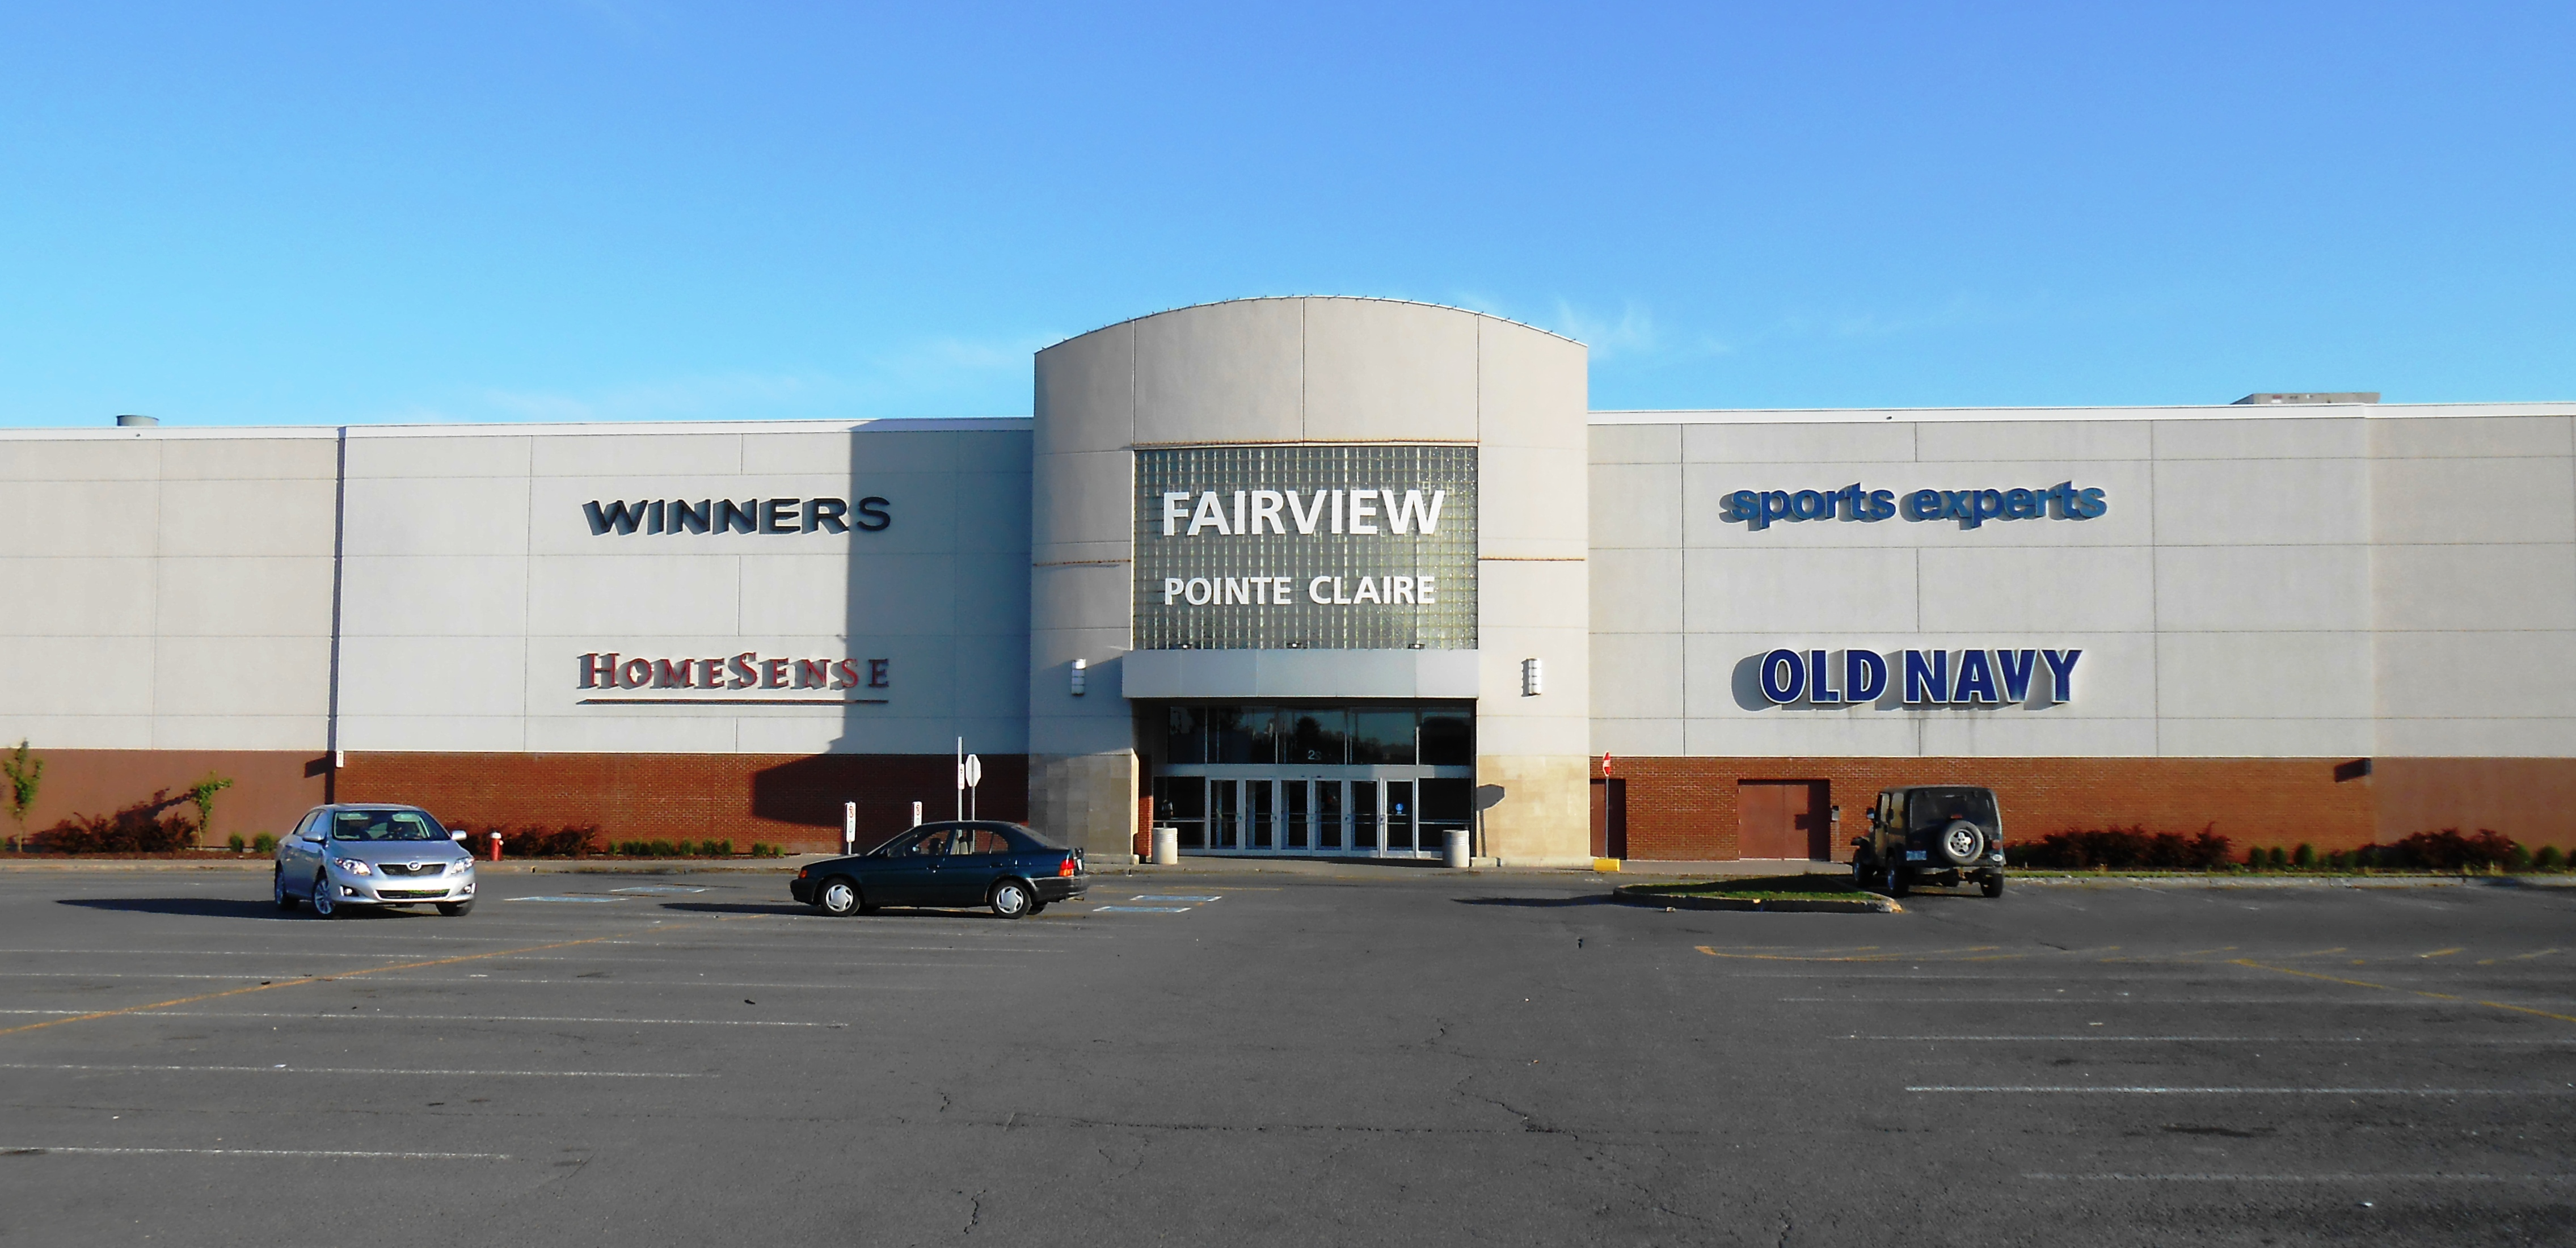 Fairview Pointe-Claire - Wikipedia